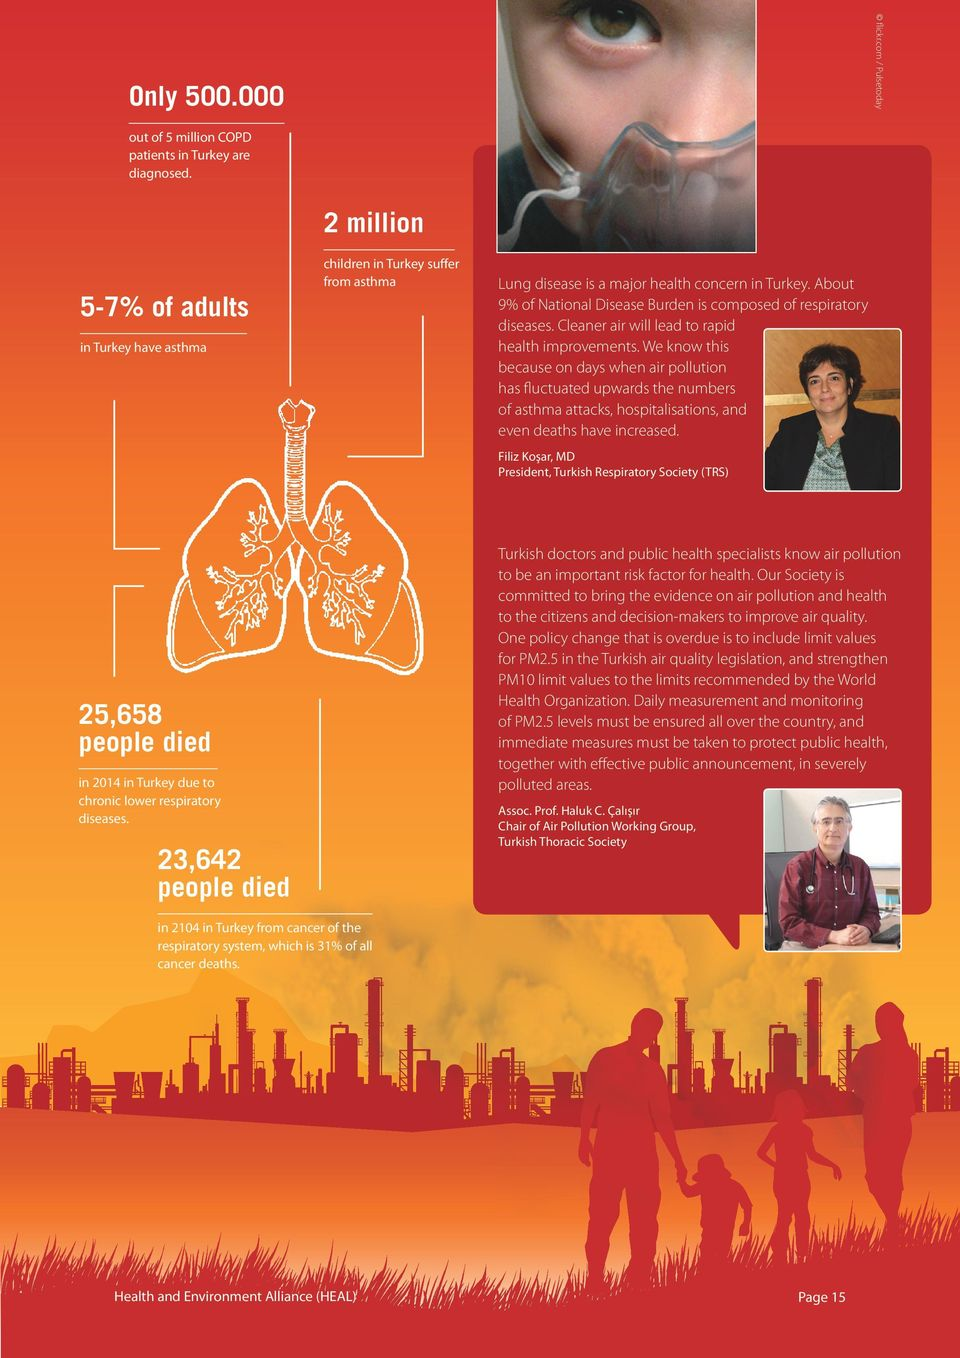 About 9% of National Disease Burden is composed of respiratory diseases. Cleaner air will lead to rapid health improvements.